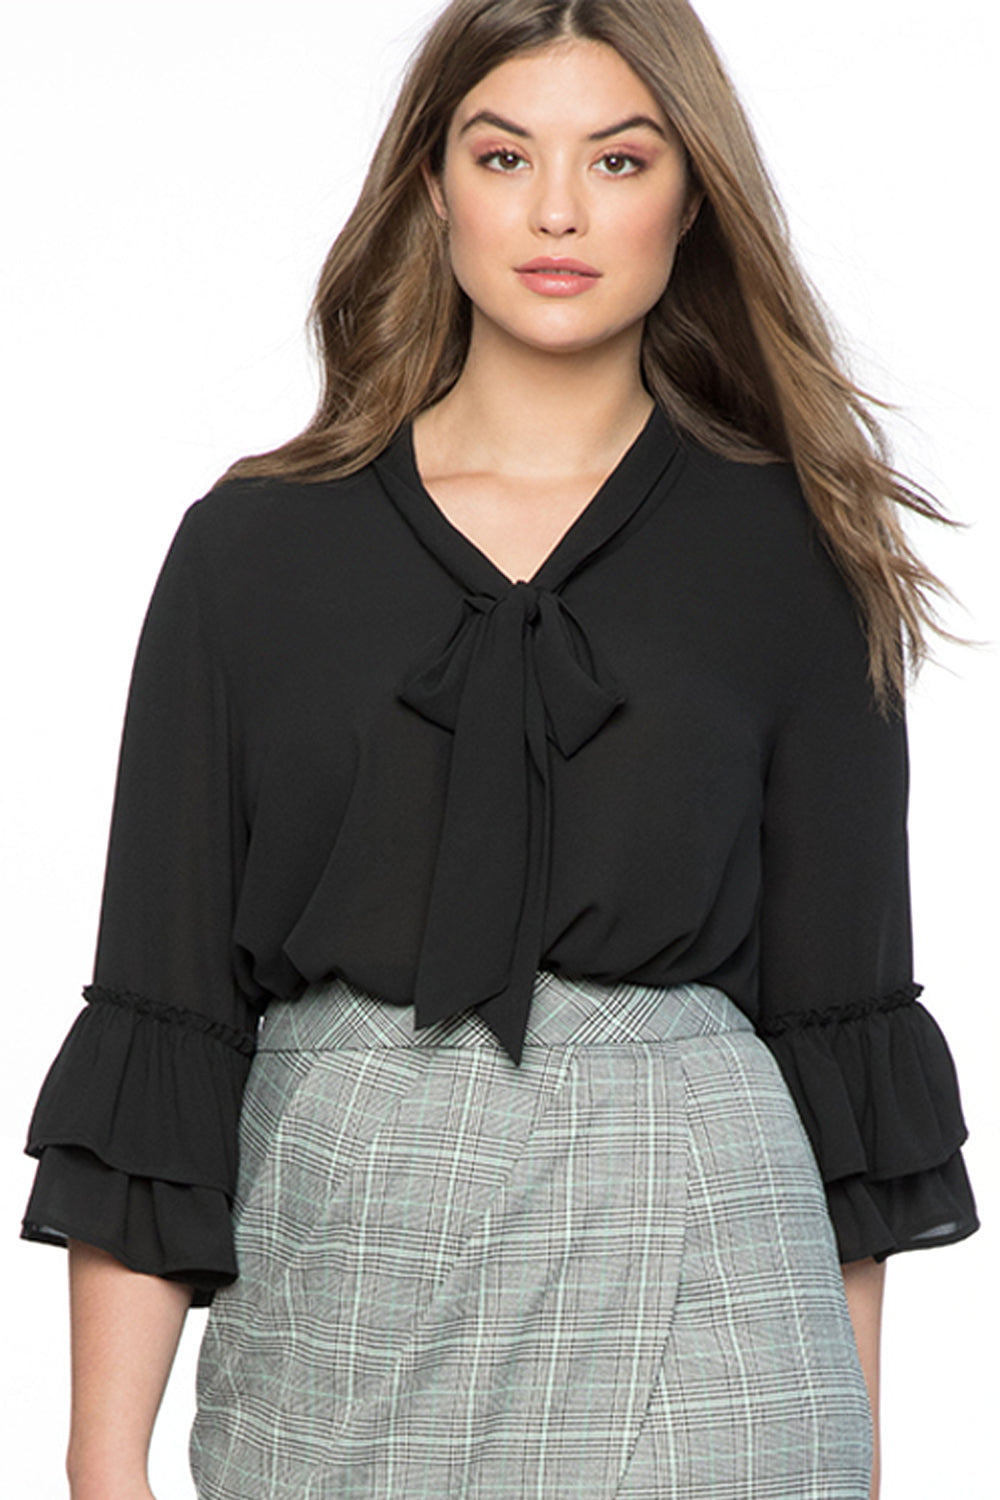 Black Tie Neck Ruffle Sleeved Plus Size Blouse LAVELIQ - Laveliqus